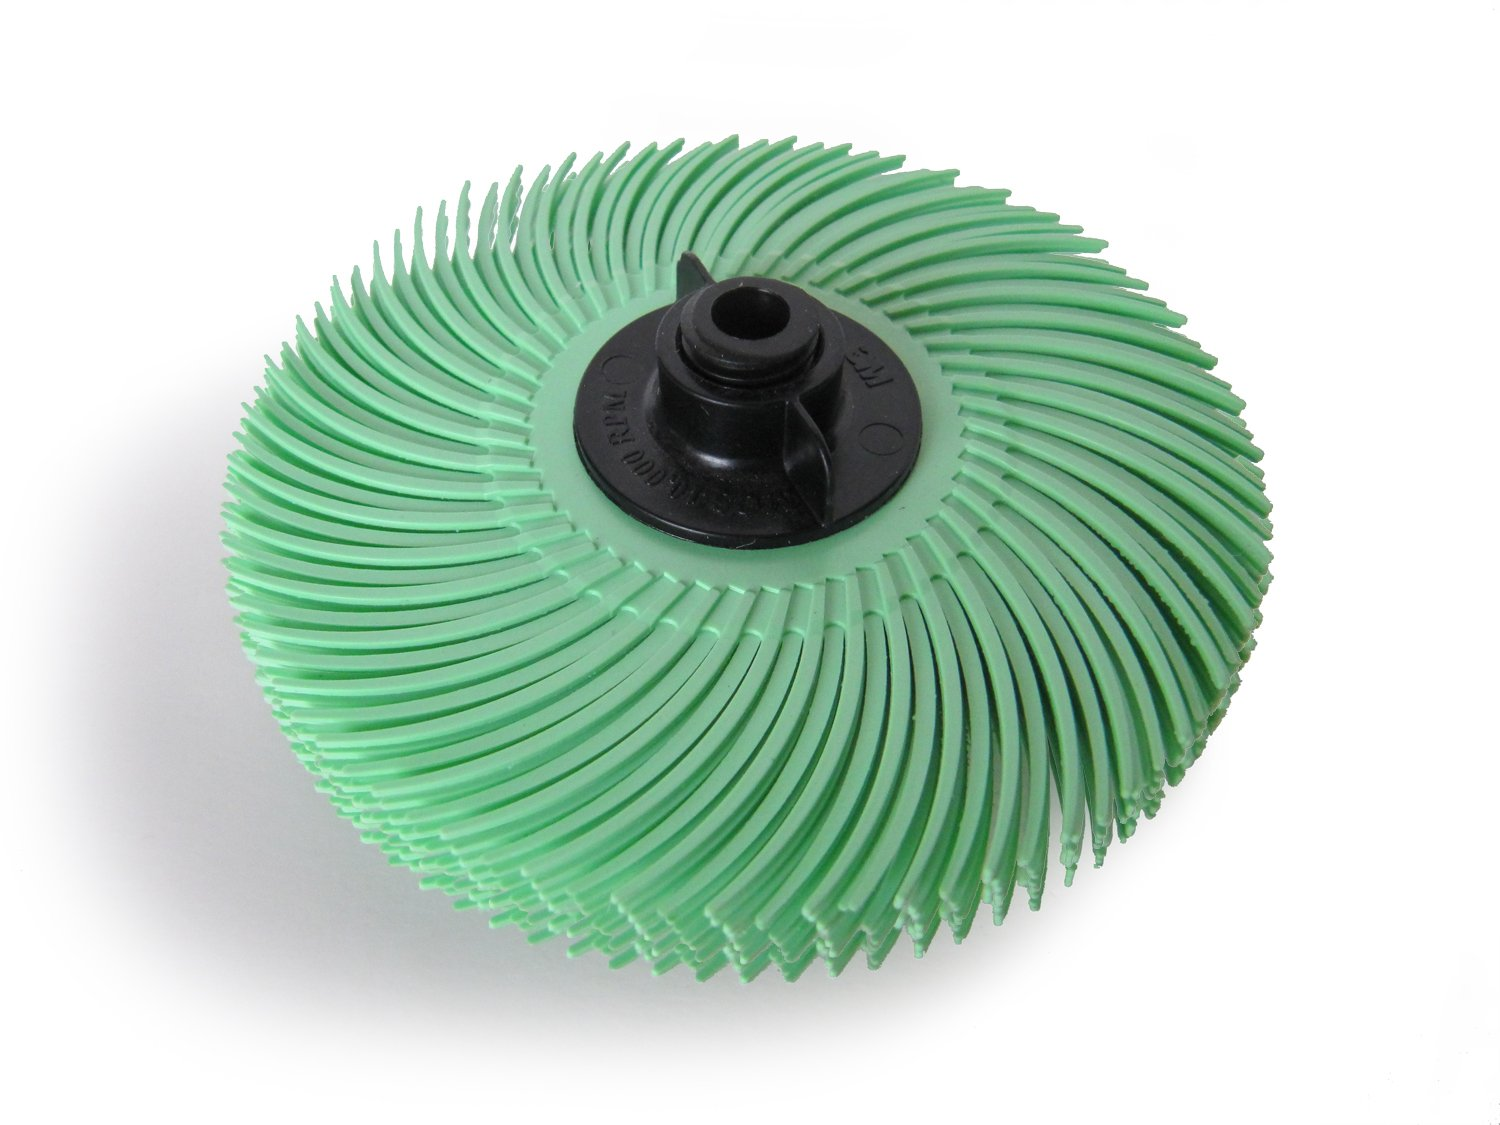 JoolTool 3M Scotch-Brite Green Radial Bristle Brush Assembled with Plastic Tapered Mandrel Hub, 6 Ply, 3'' Diameter, 1 Micron